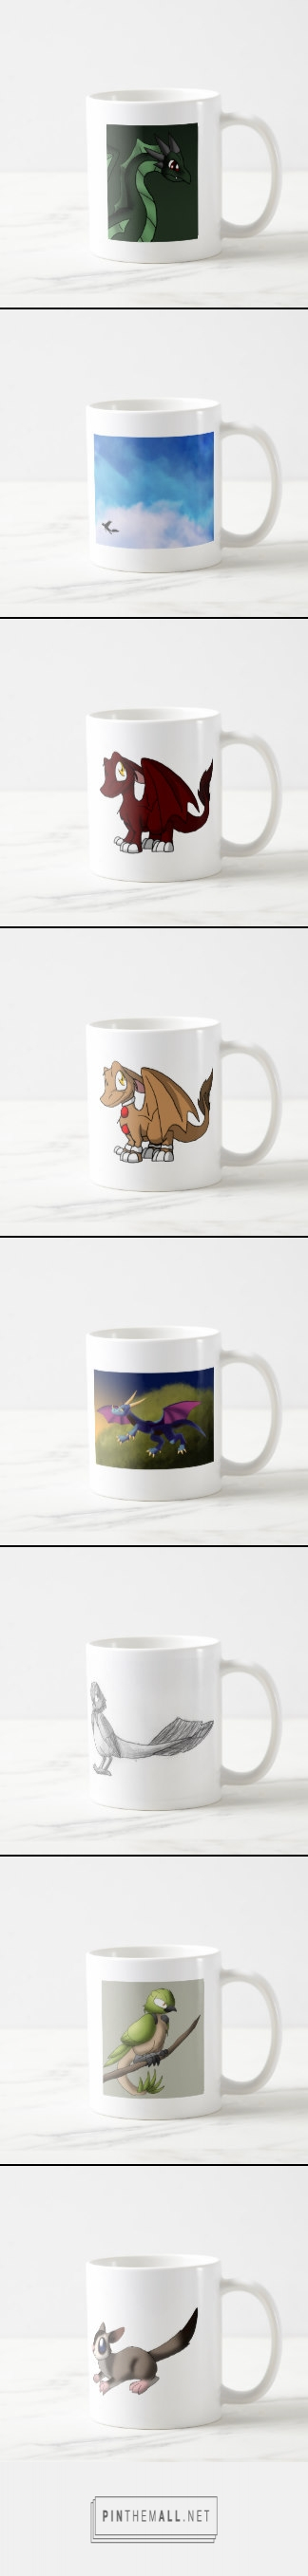 Art of Ganene K. Coffee Mugs  #coffeemugs #dragons #cartoon #anime #sugarglider #sugar #glider #animal #reptile #bird #red #blue #green #lizard #art #... - a grouped images picture